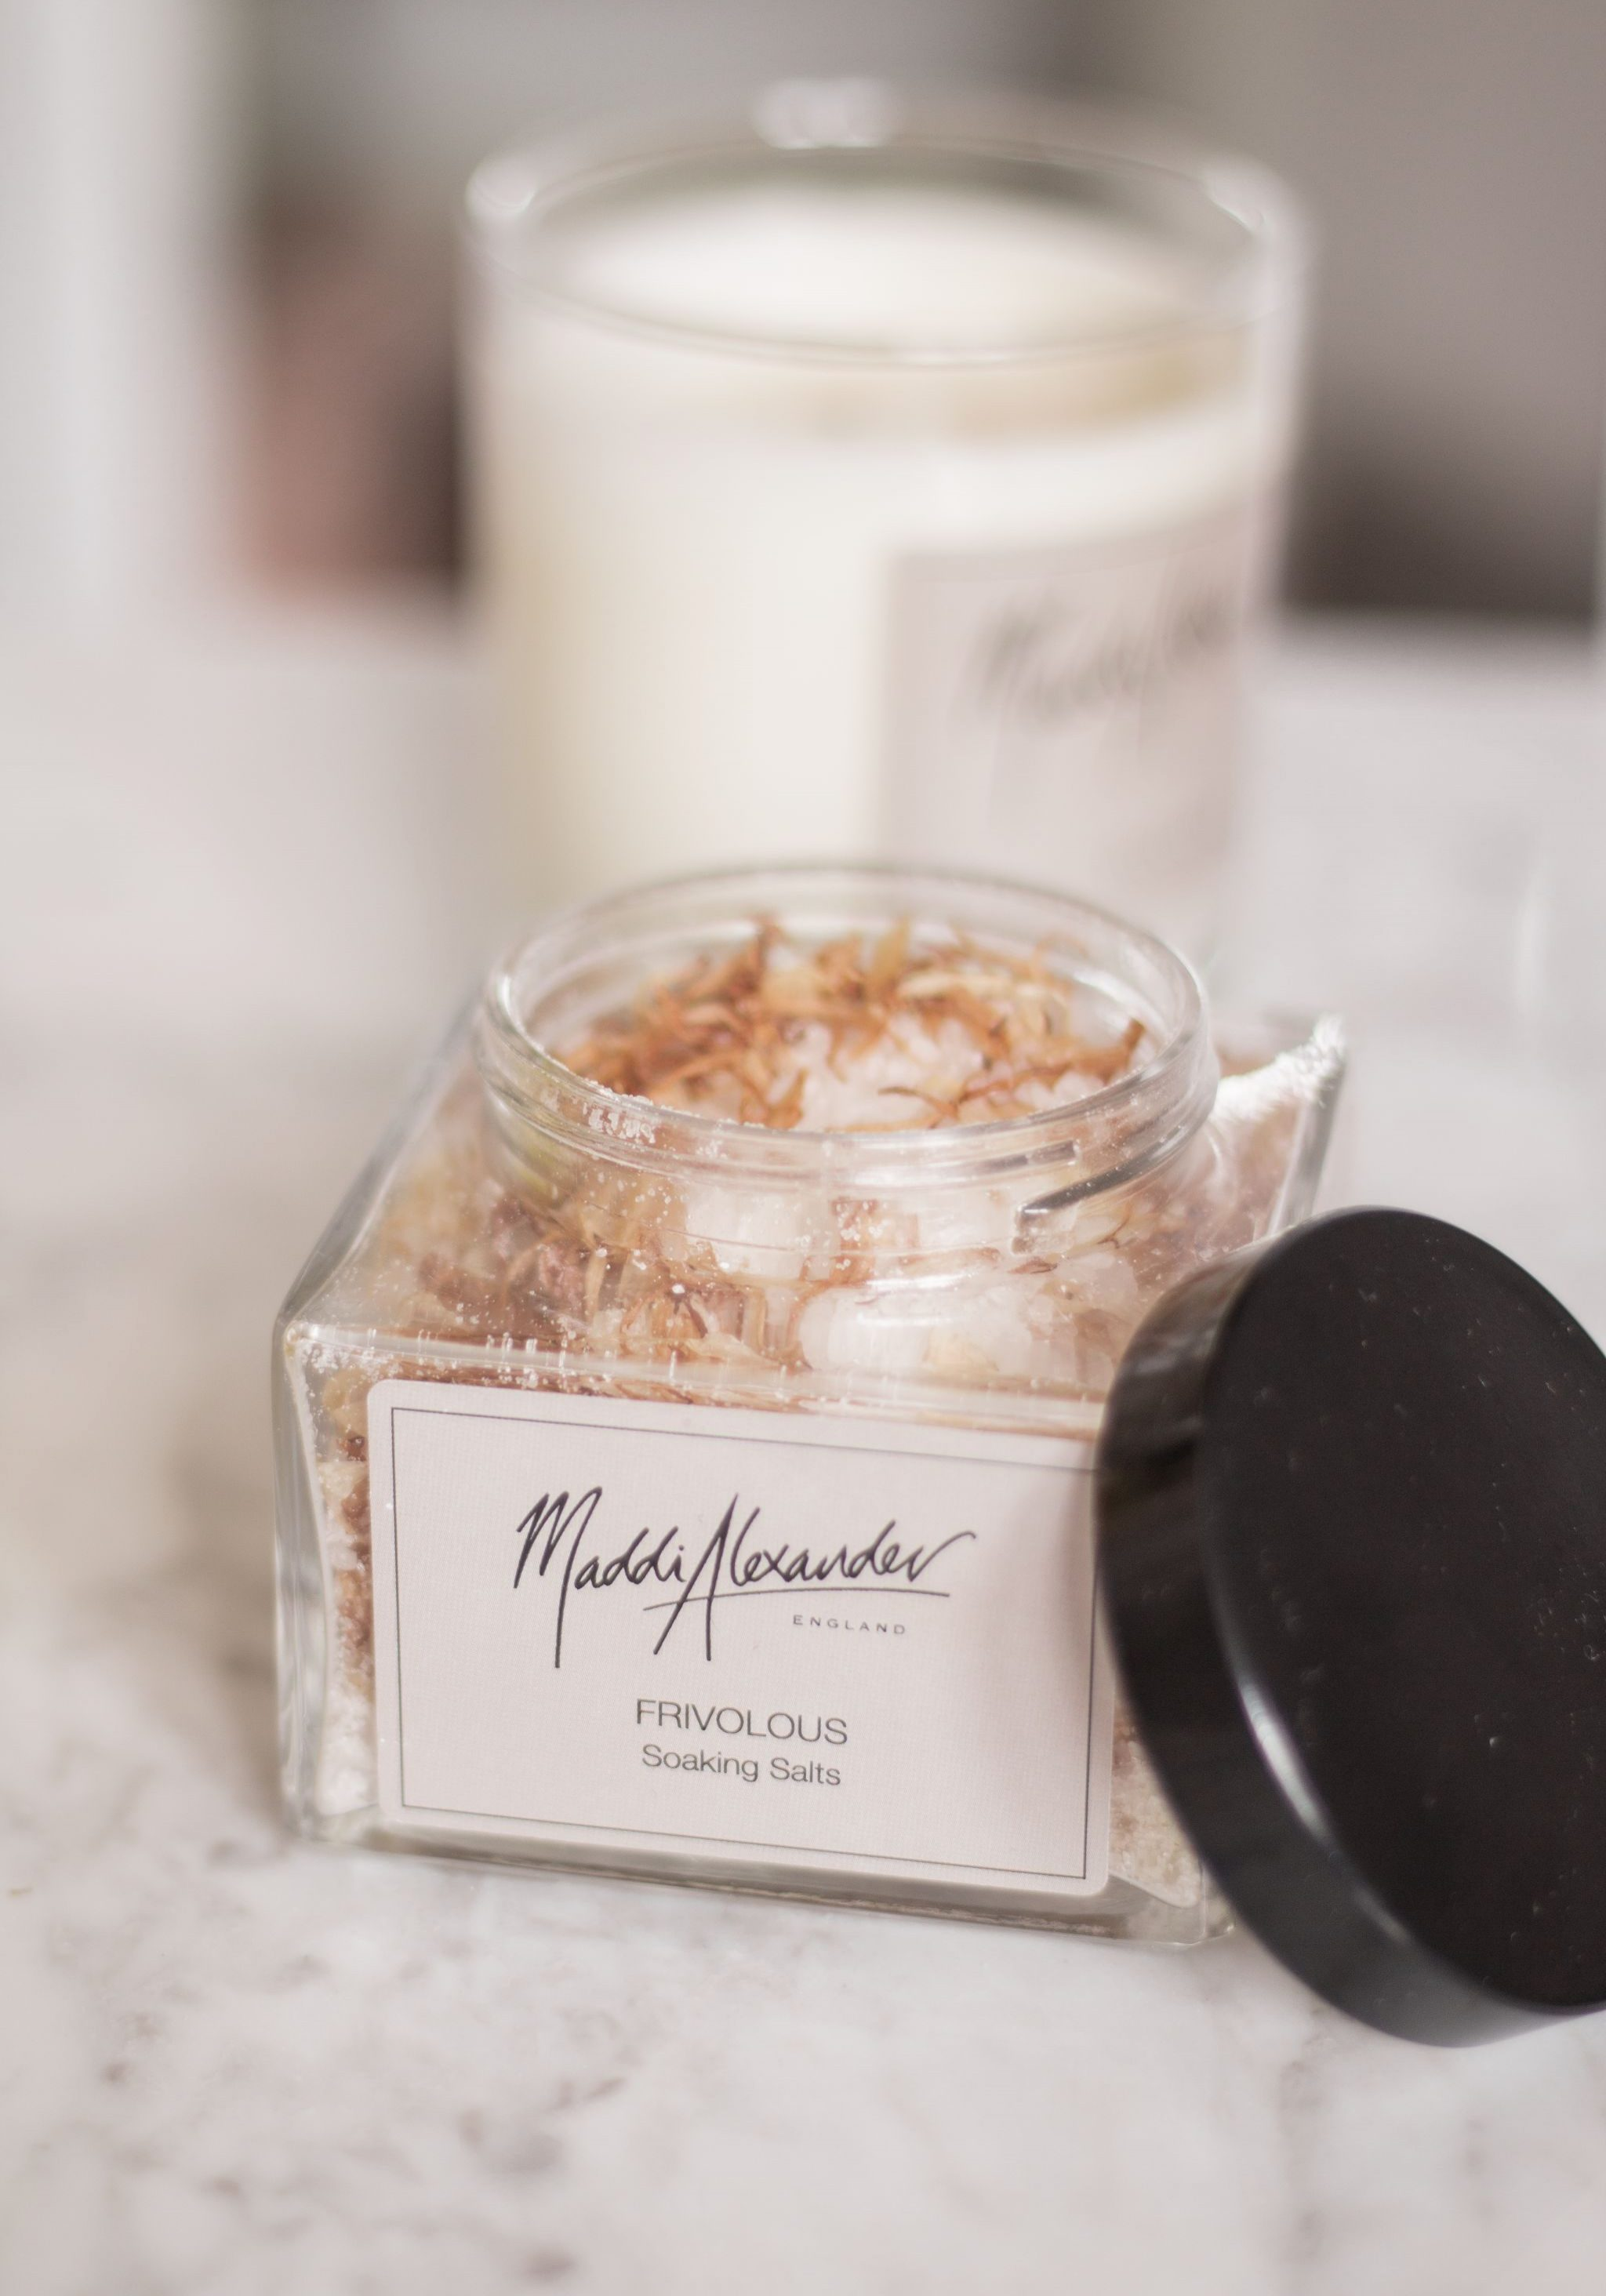 Maddi Alexander Social Media Photography Lifestyle Content Creation Frivolous Soaking Salts Mothers Day Gift Ideas